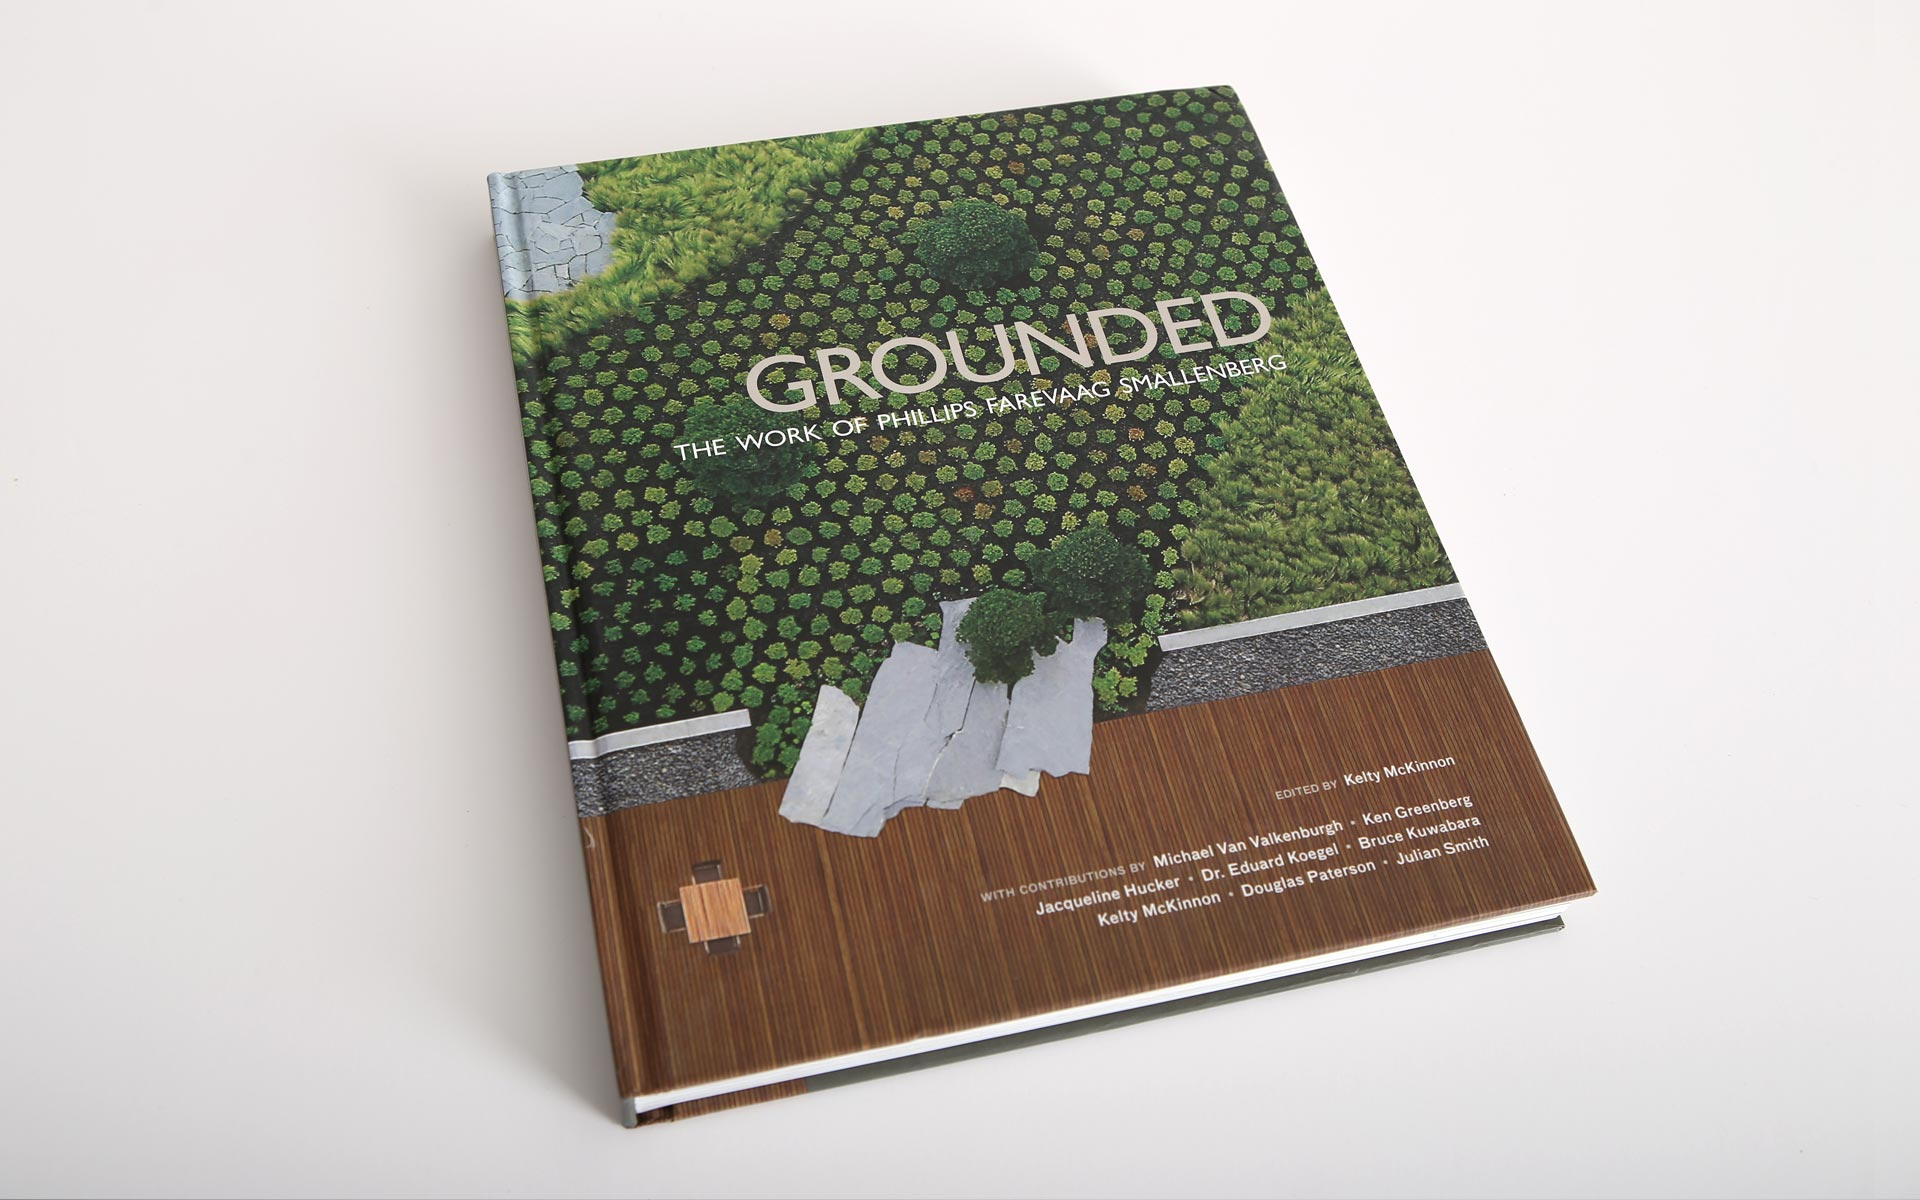 PFS Studio, Grounded, Canadian Landscape Architecture book, winner of the CSLA award